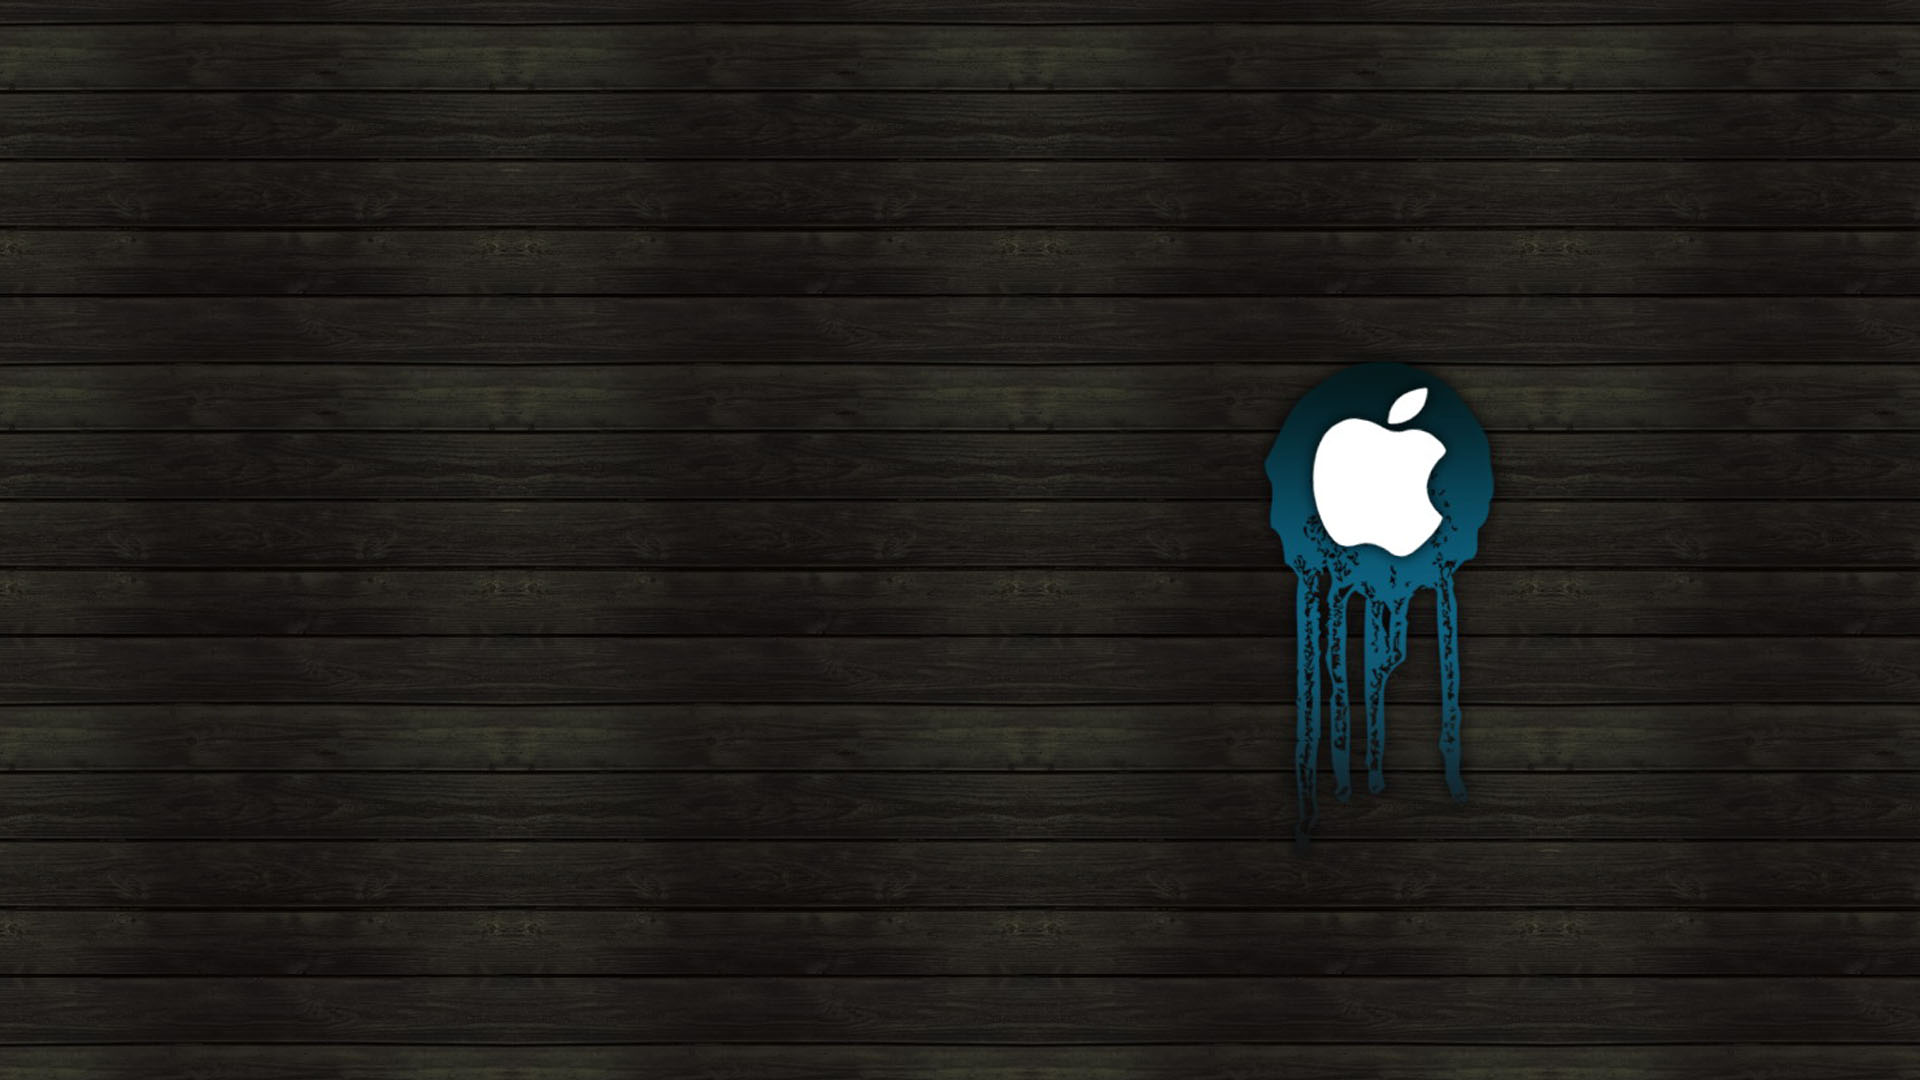 Wallpaper For Macbook Air 11